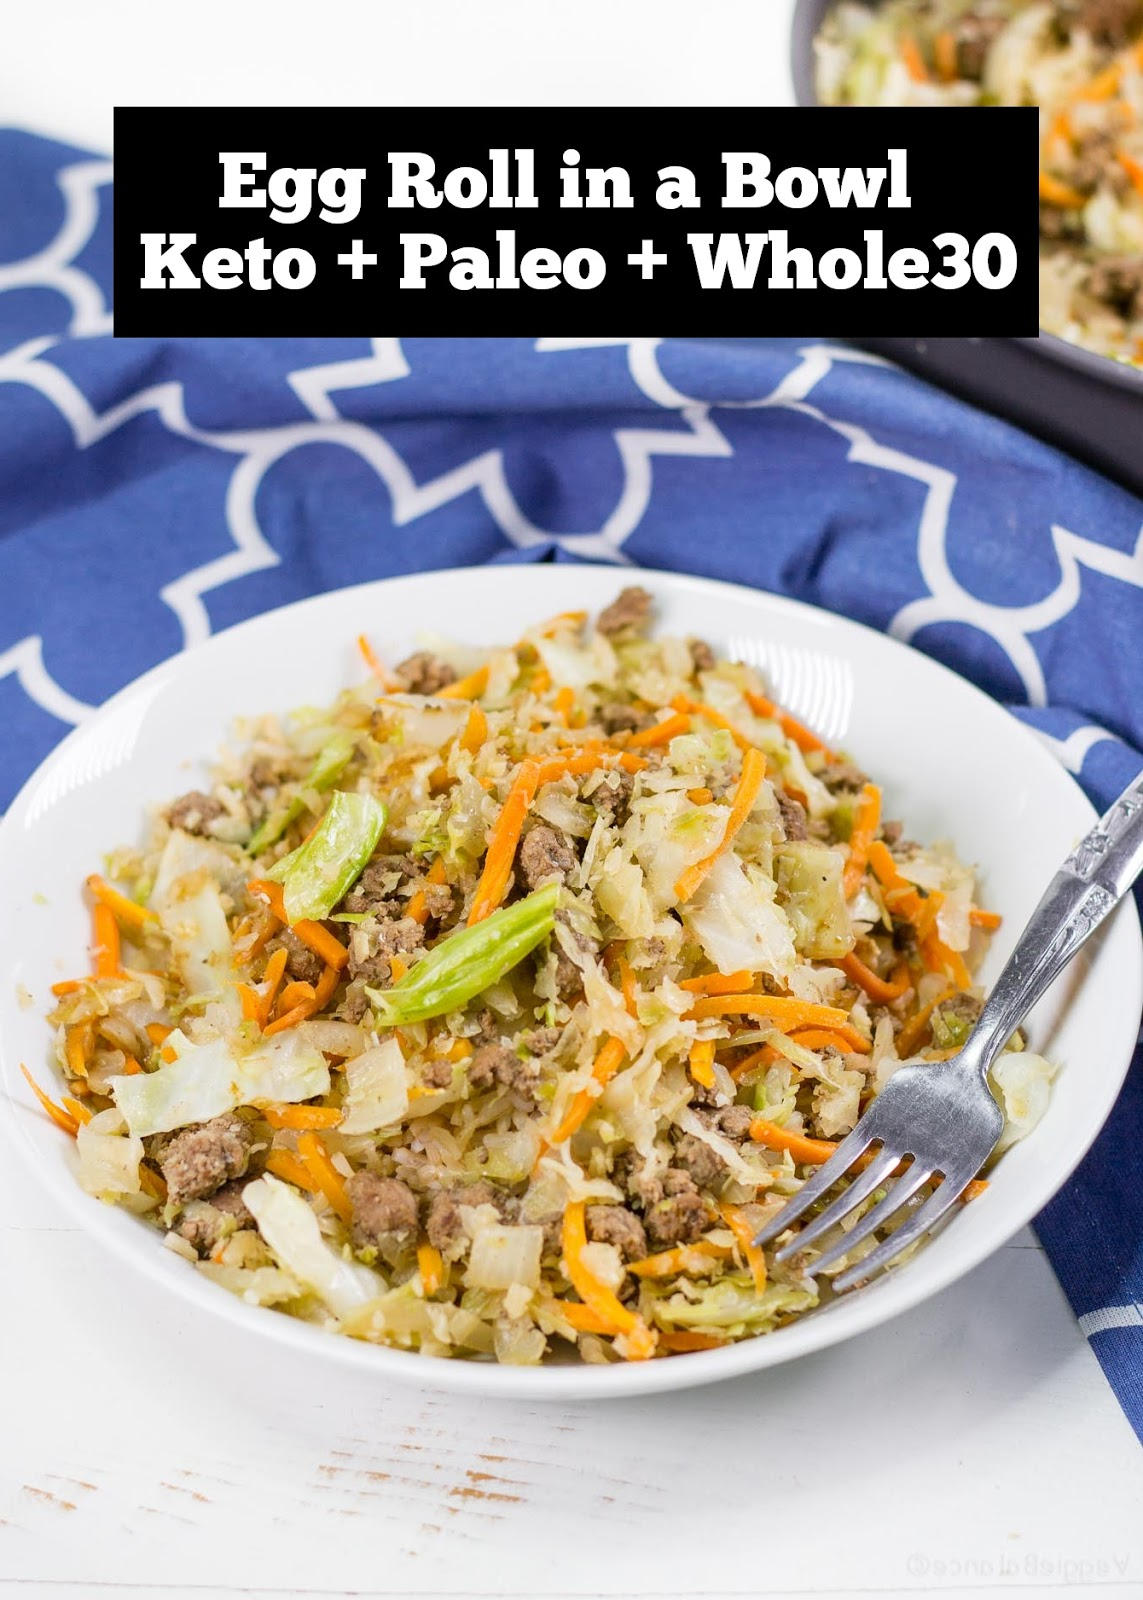 Egg Roll in a Bowl | Keto + Paleo recipe | Whole 30 Recipes | Dinner Recipes Healthy, Dinner Recipes Easy, Dinner Recipes For Family, Dinner Recipes Vegan, Dinner Recipes For Two, Dinner Recipes Crockpot, Dinner Recipes Chicken, Dinner Recipes With Ground Beef #dinner #dinnerrecipe #keto #paleo #whole30 #eggroll #ketodiet #ketogenic #ketodinner